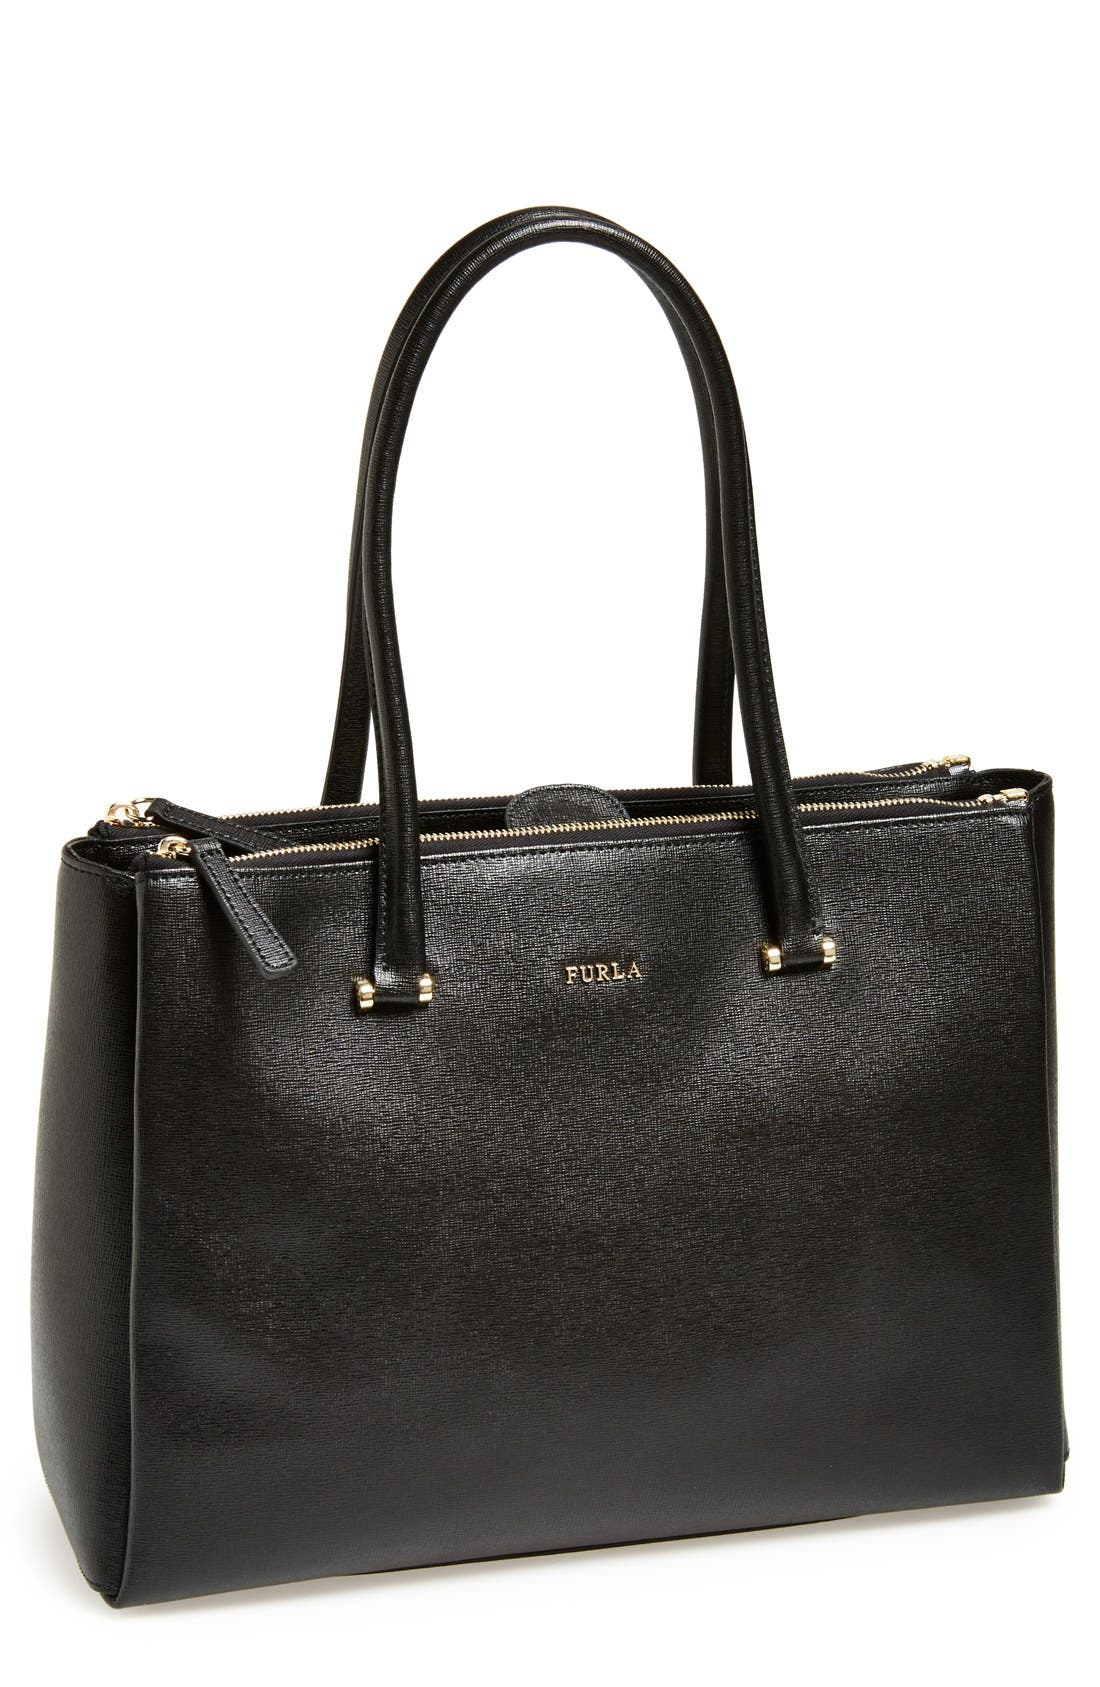 Main Image - Furla 'Large Lotus' Saffiano Leather Tote